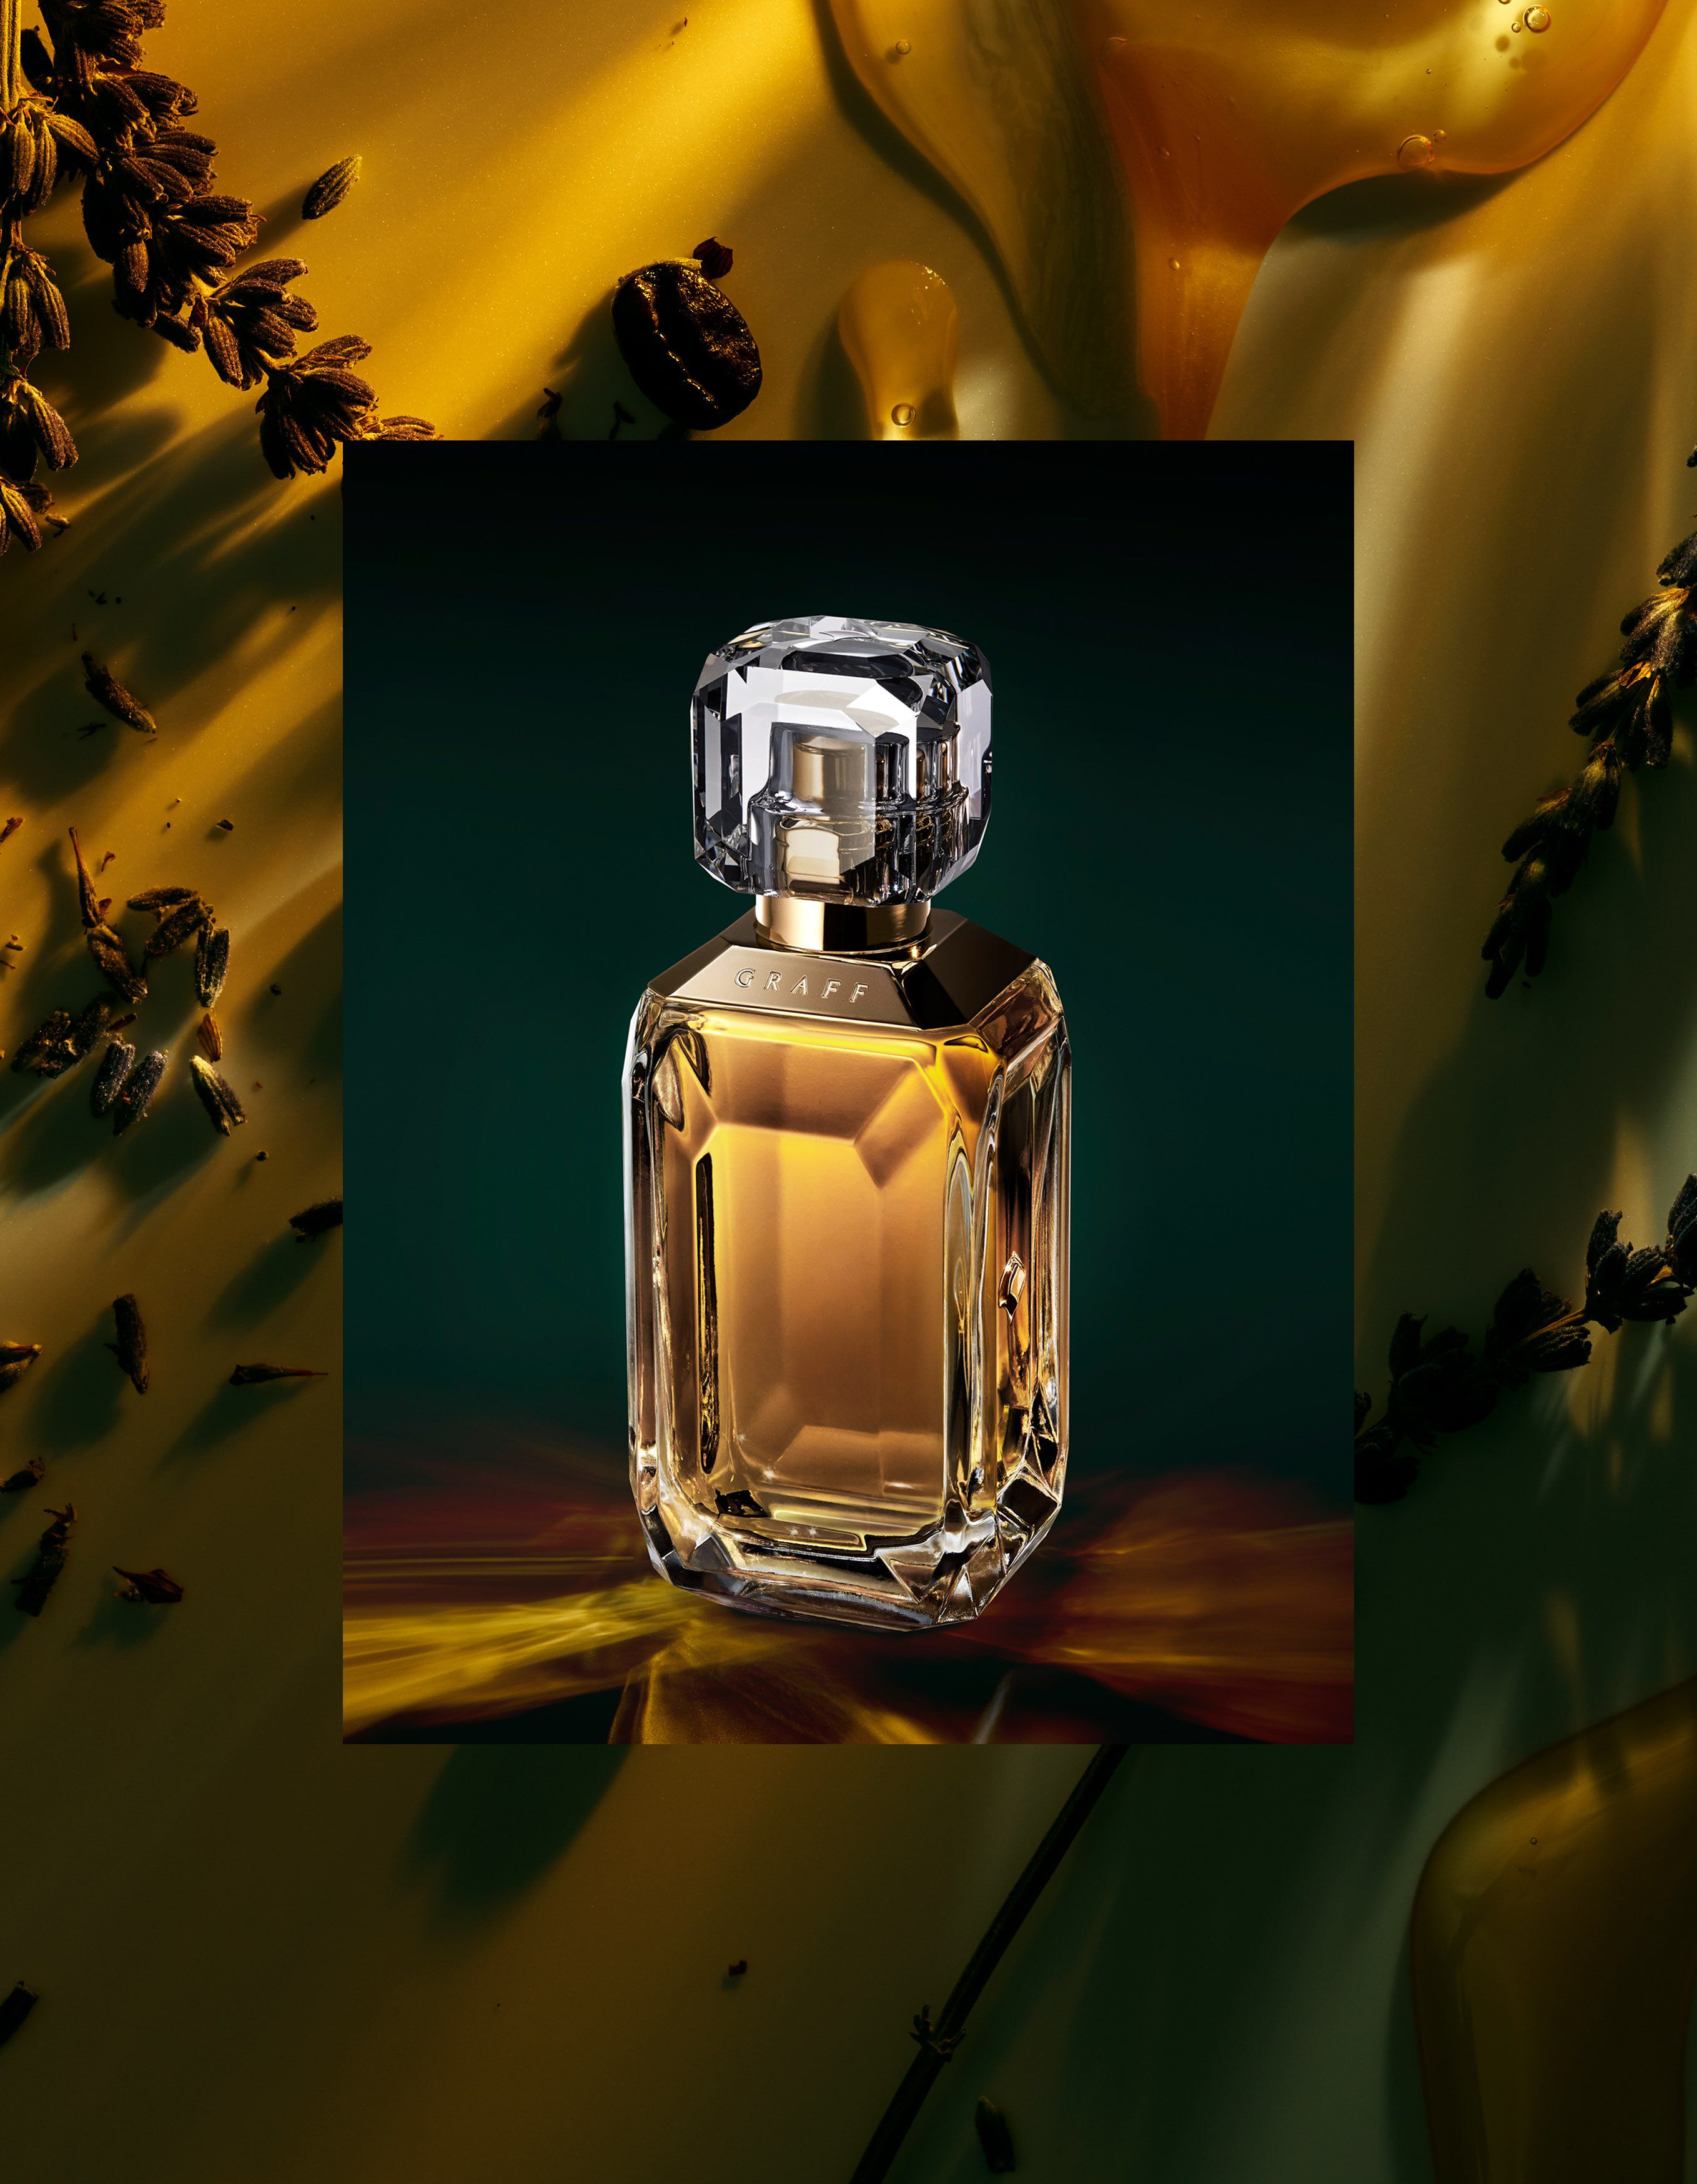 The Lesedi La Rona IV fragrance with ingredients by Graff